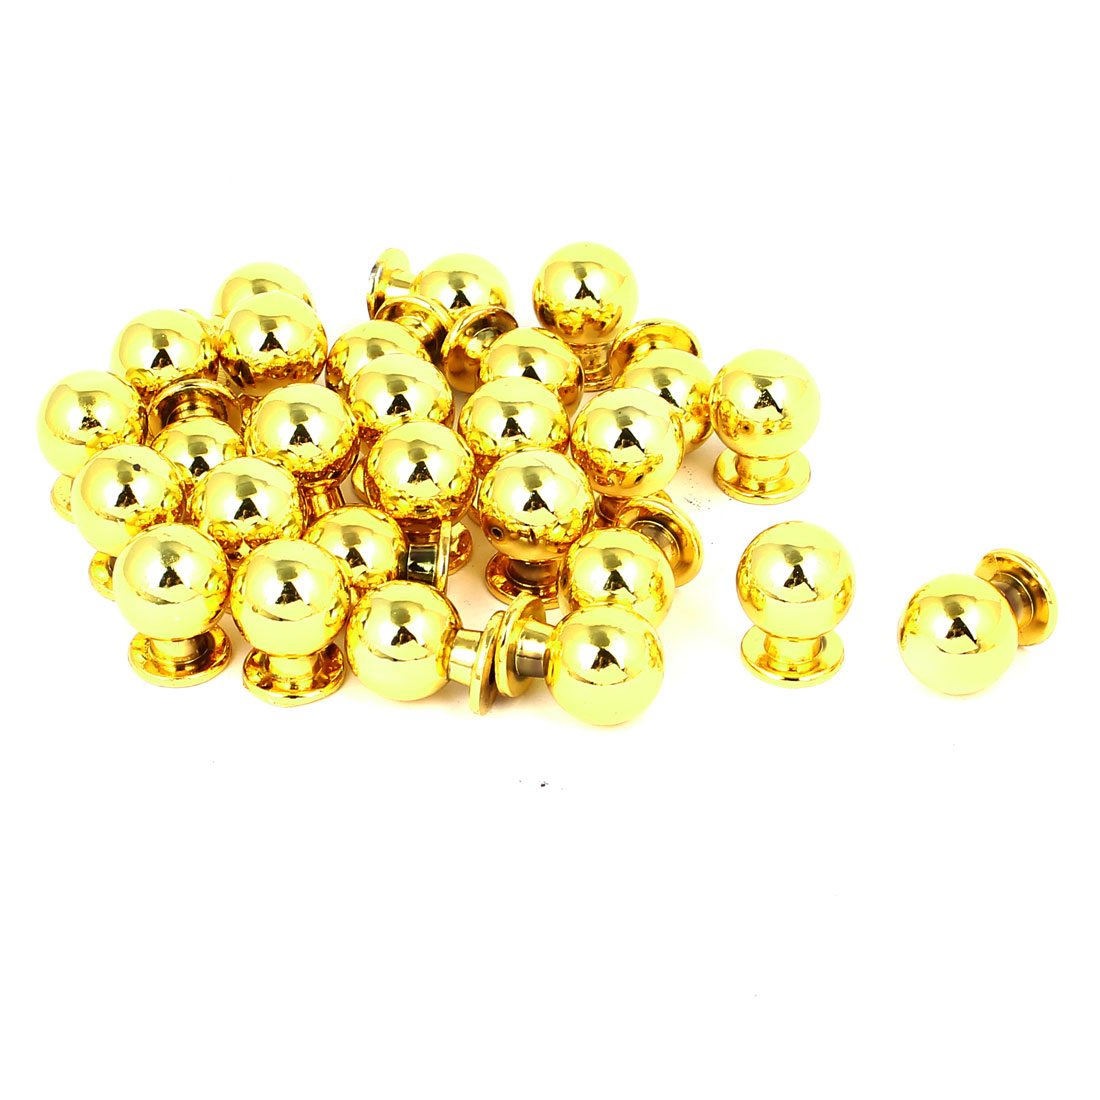 Wardrobe Drawer Metal Round Pull Knob Grip Grasp Gold Tone 17mm x 22mm 25pcs